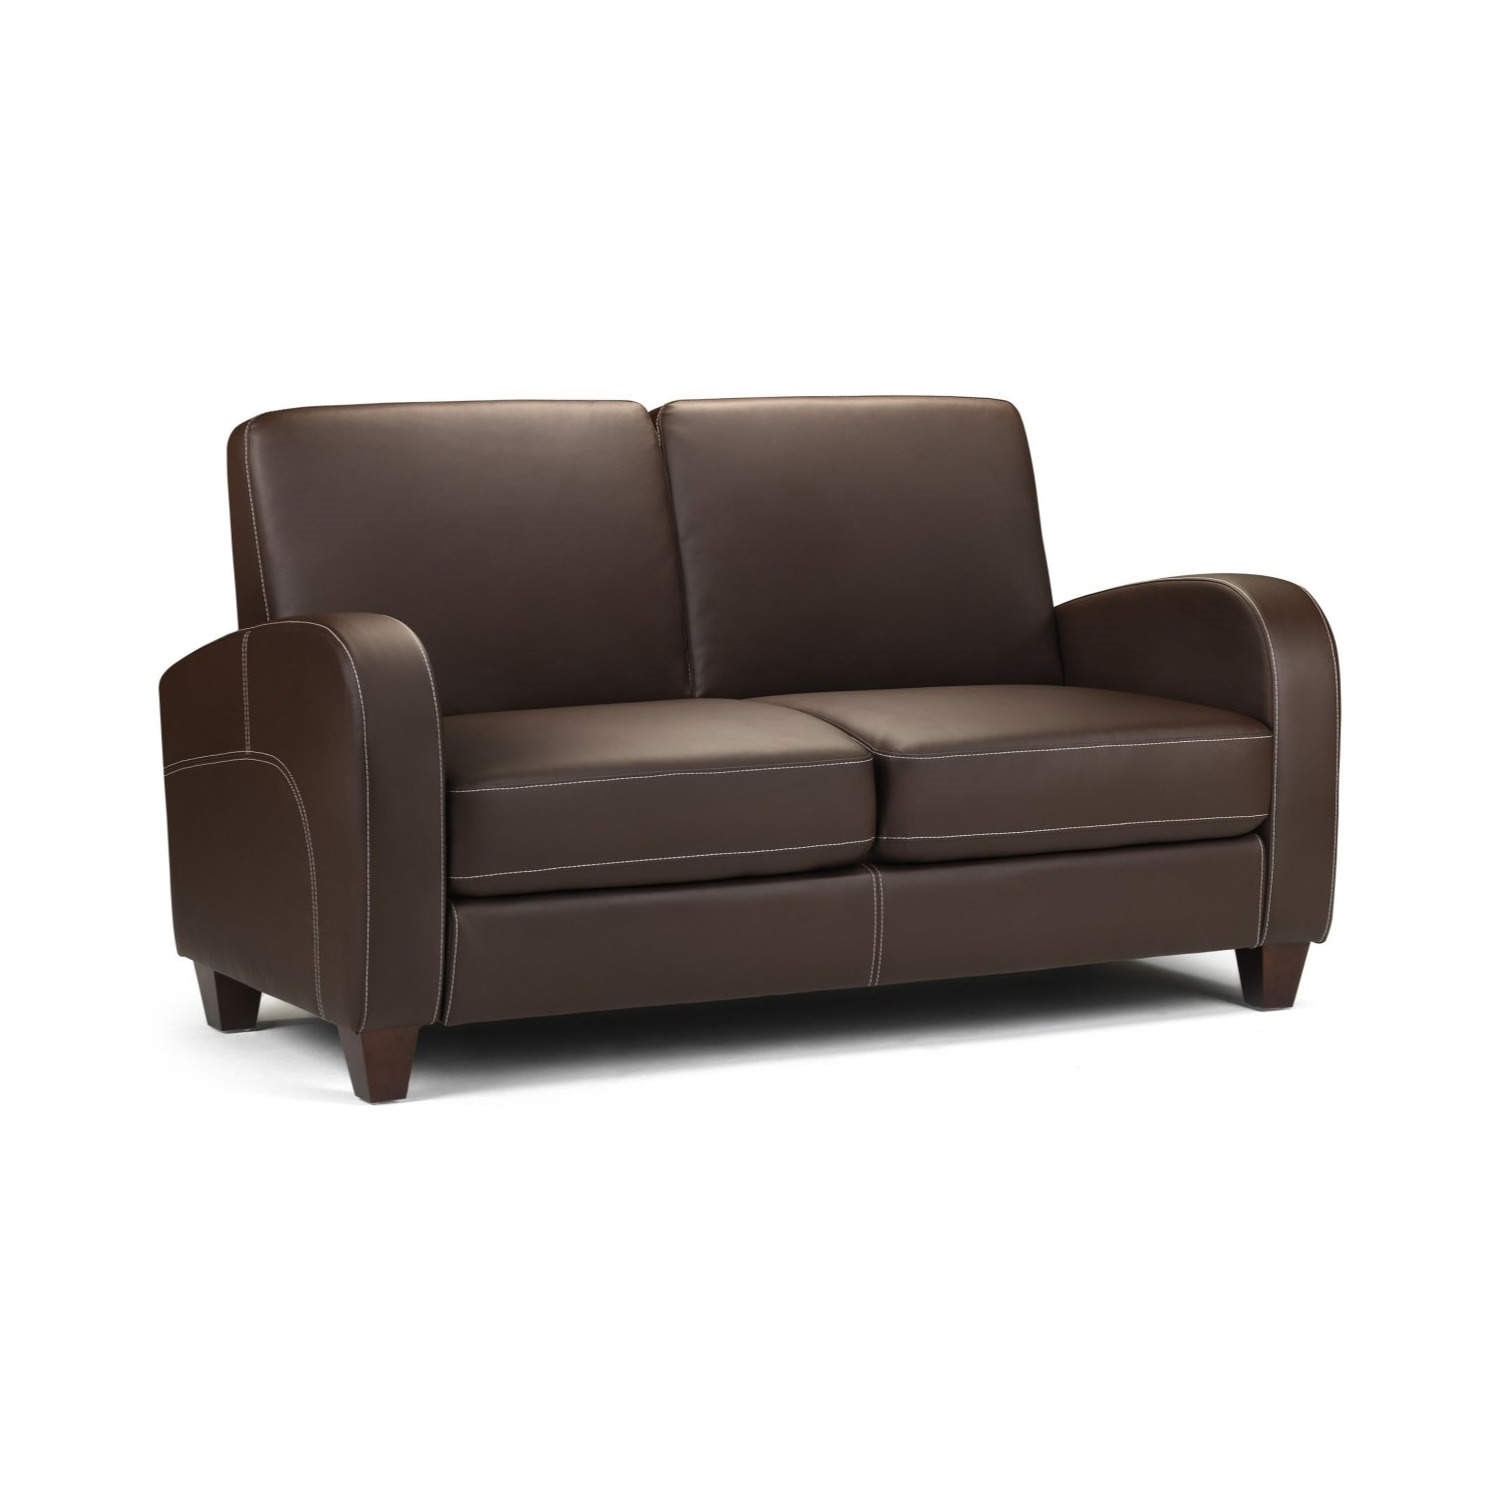 Brown Sofa in  Faux Leather 2 Seater - Julian Bowen